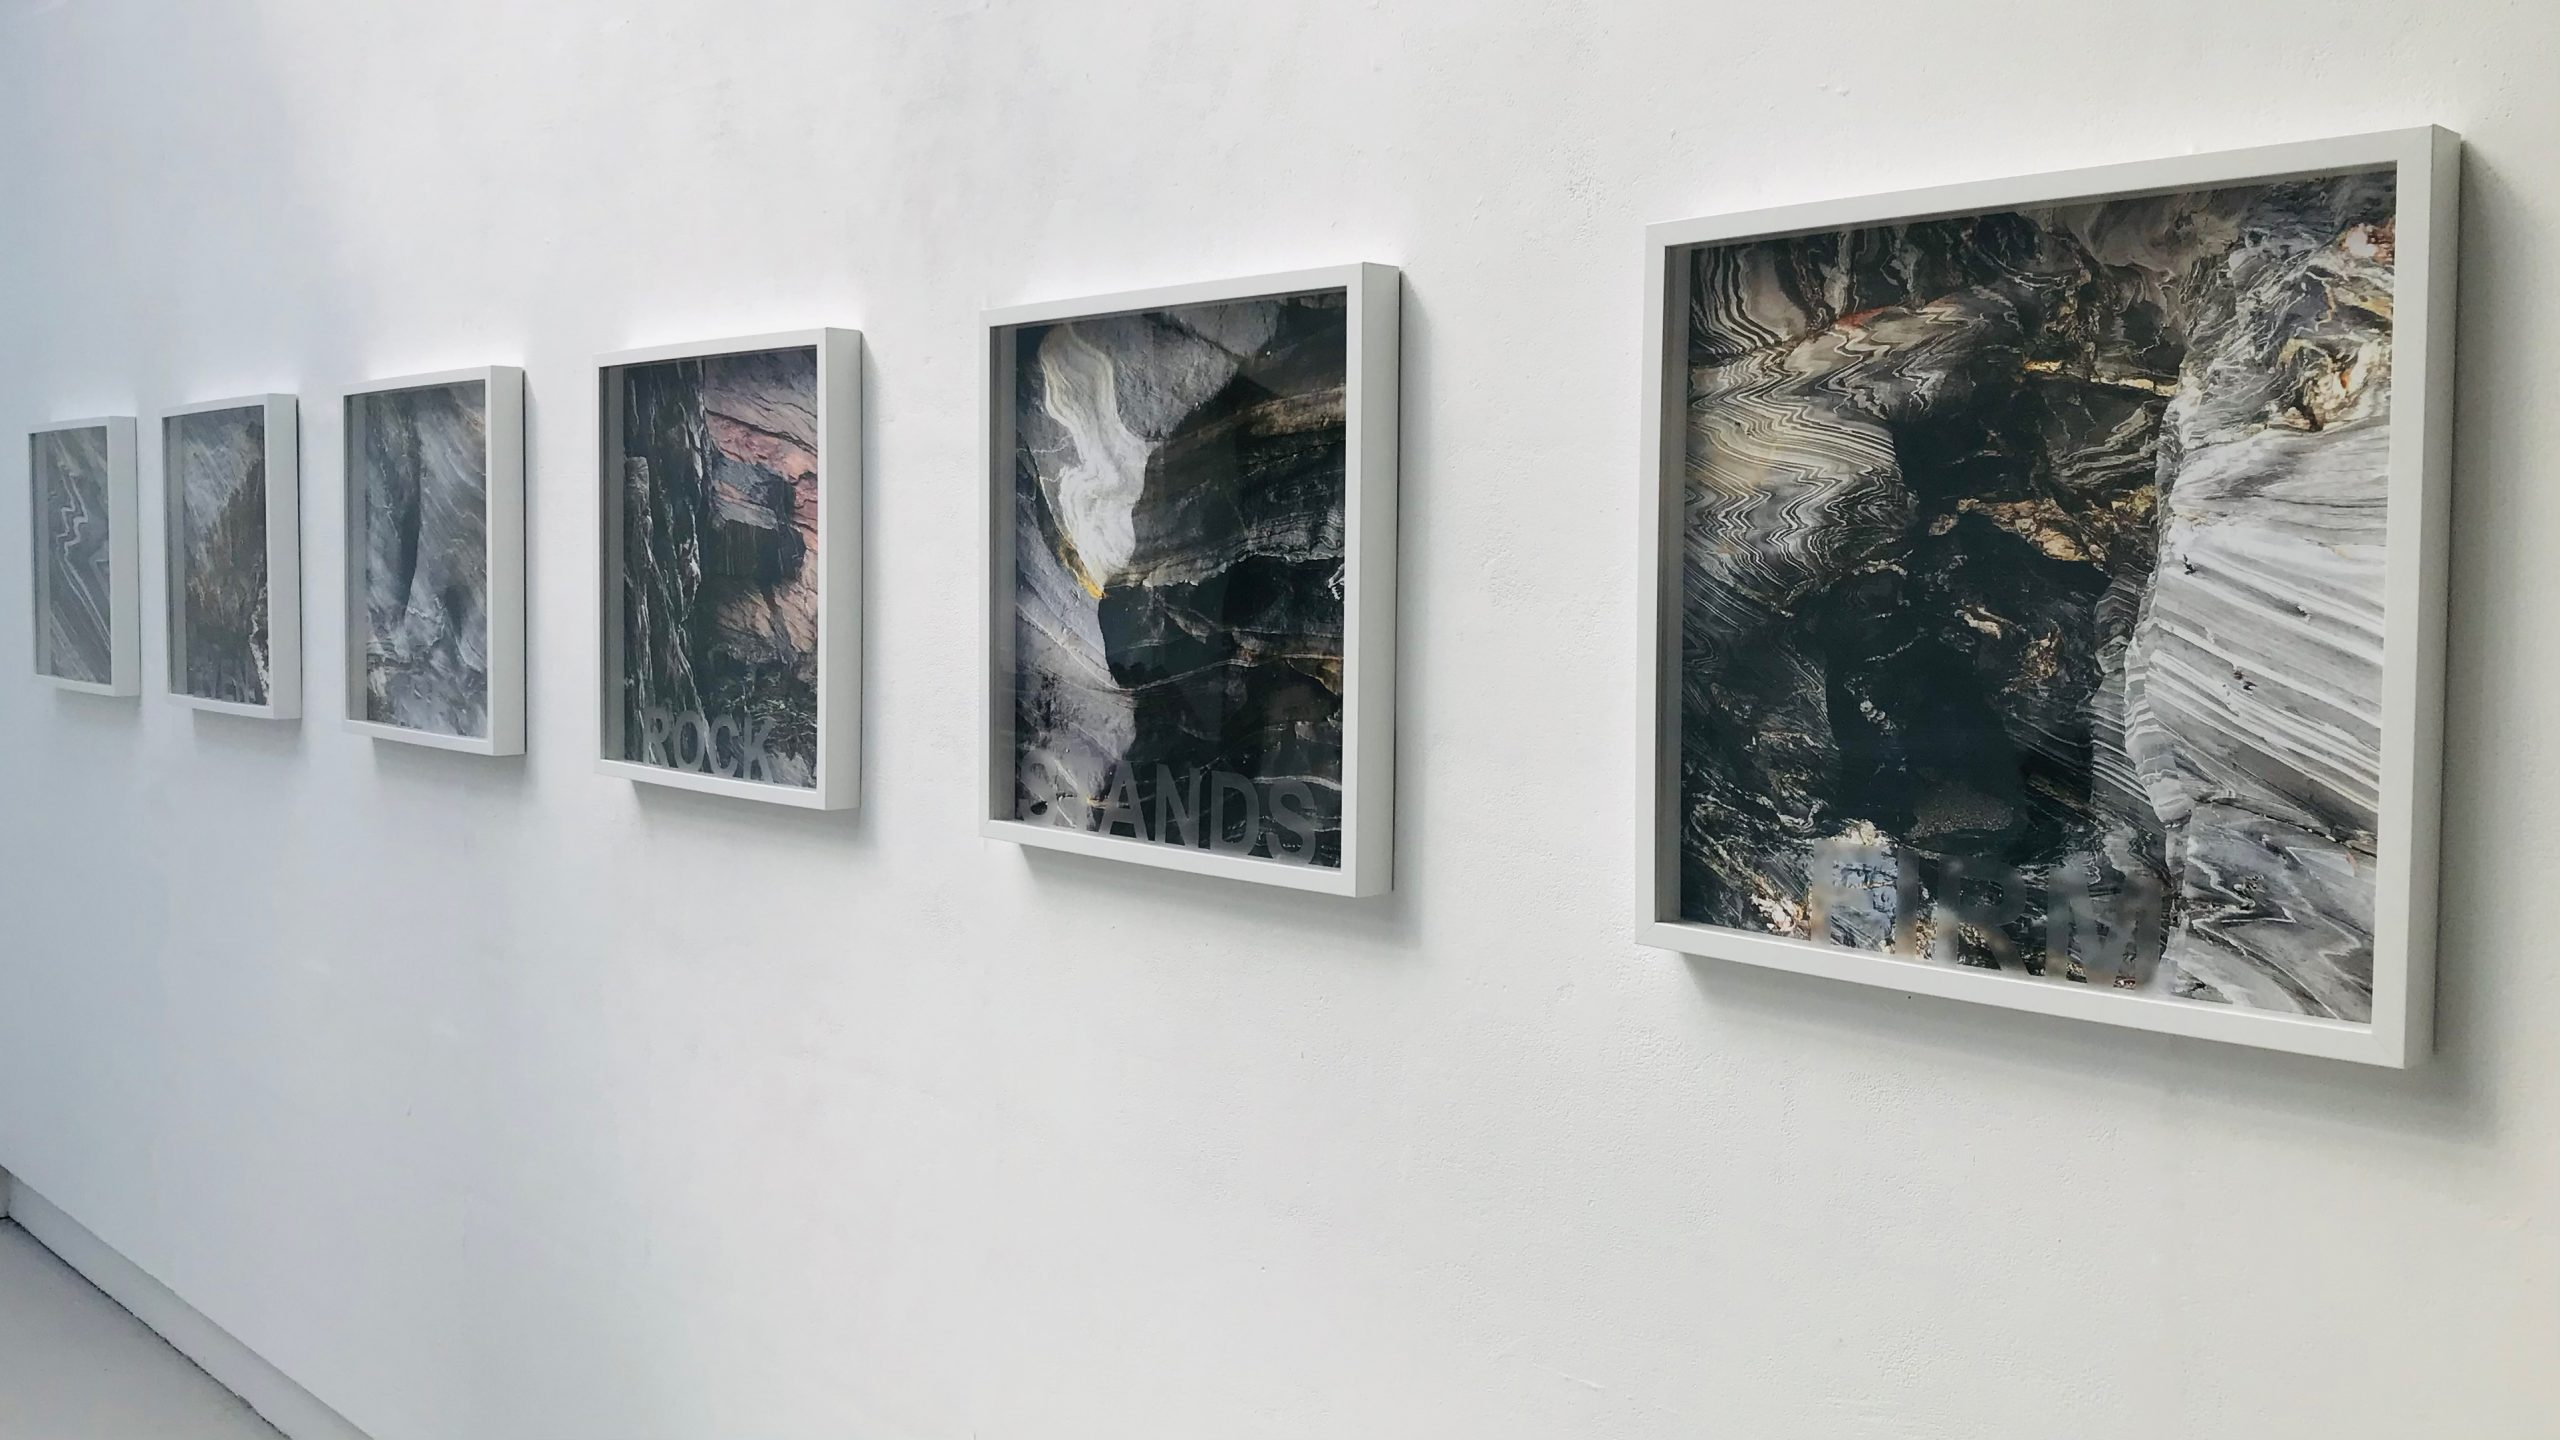 Six square framed pictures with grey, white and gold toned images of the surfaces of rocks inside them.